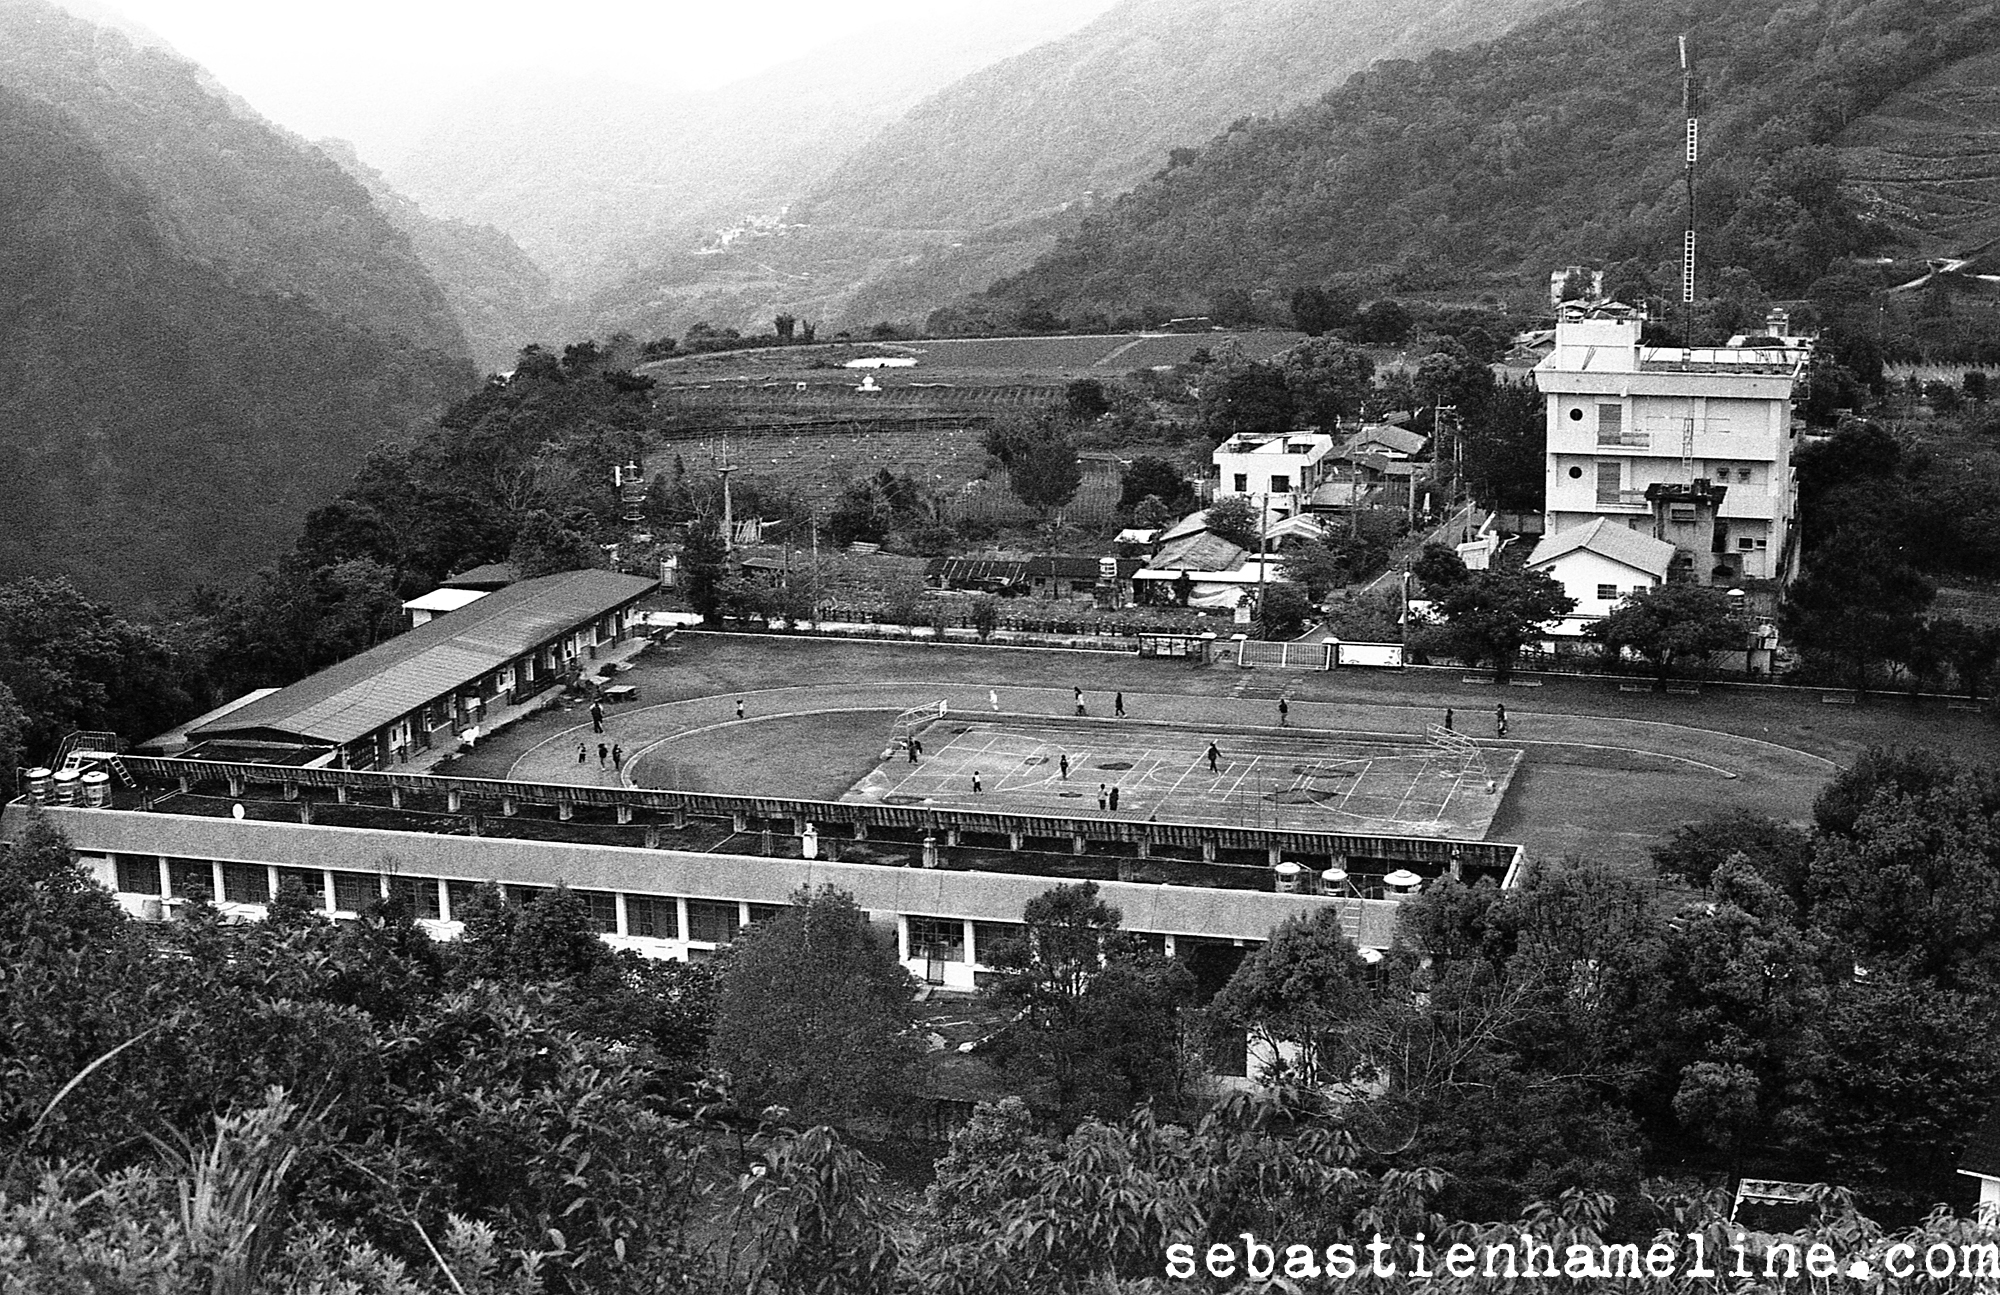 The L shaped building is the elementary school of Wulu village, the one residential street in the back.